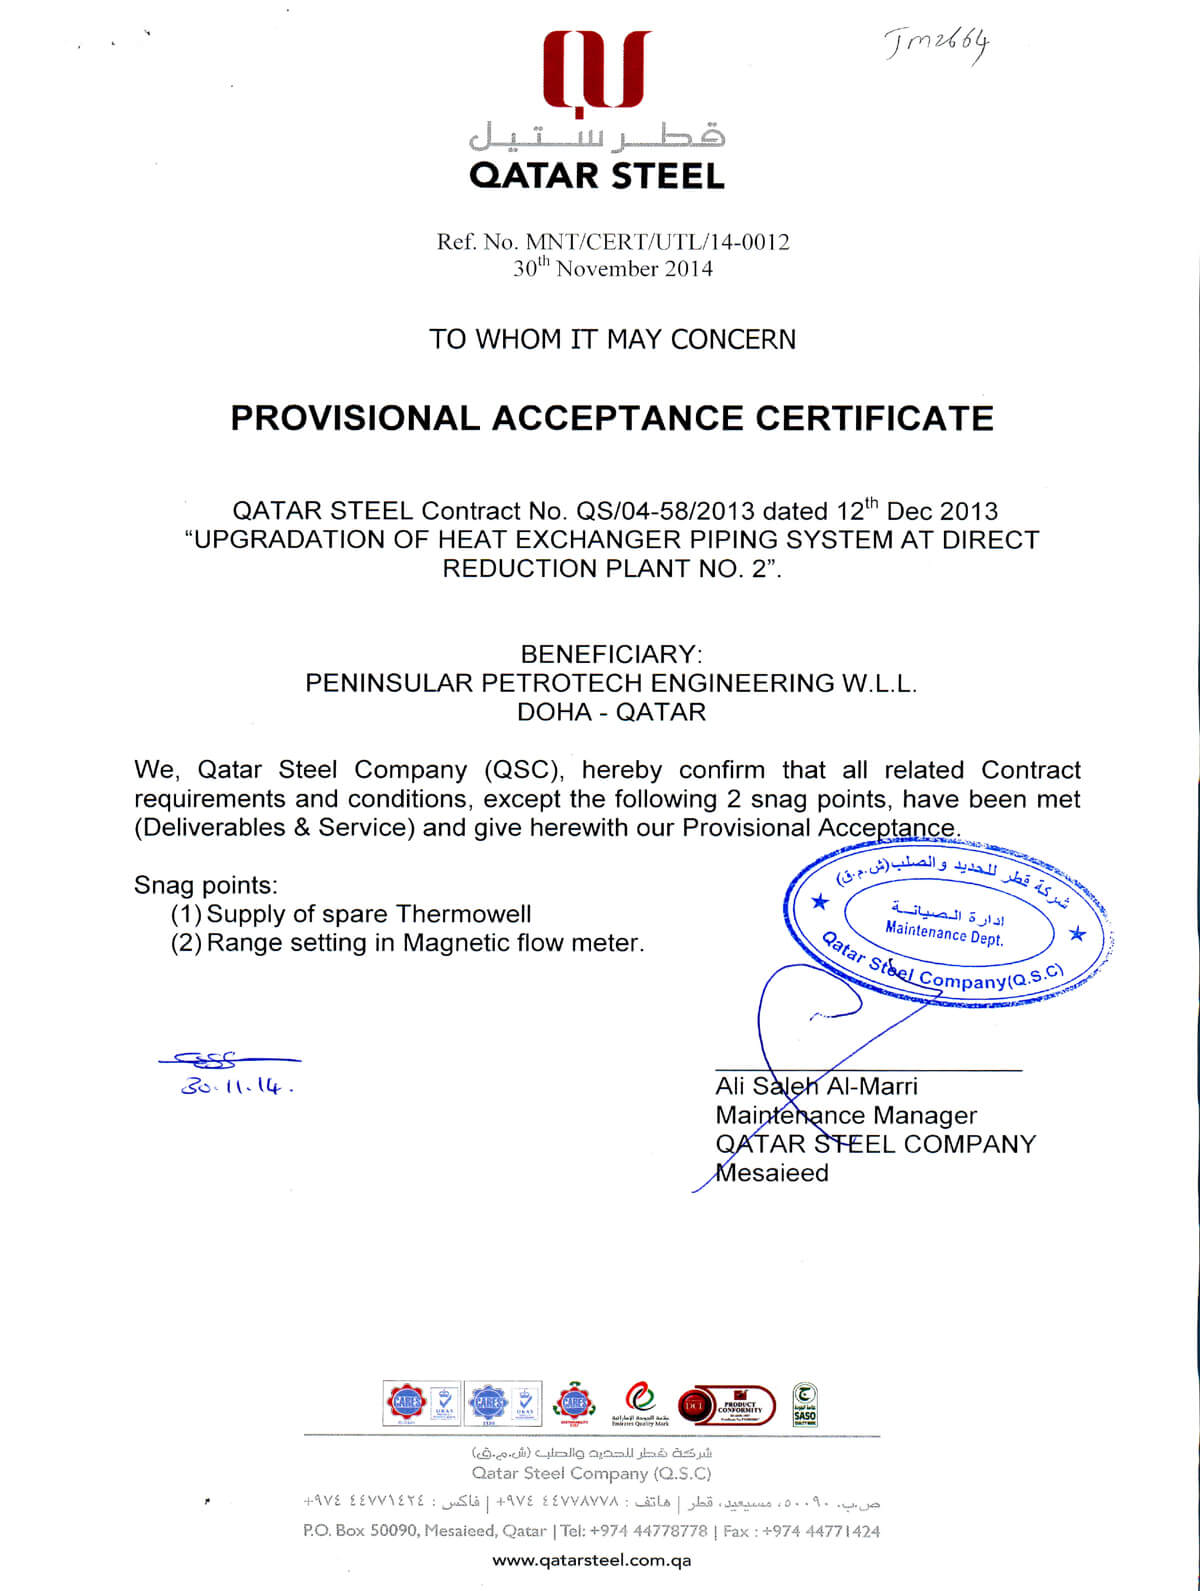 Acceptance Certificate Template ] - 10 Sample Printable Inside Certificate Of Acceptance Template